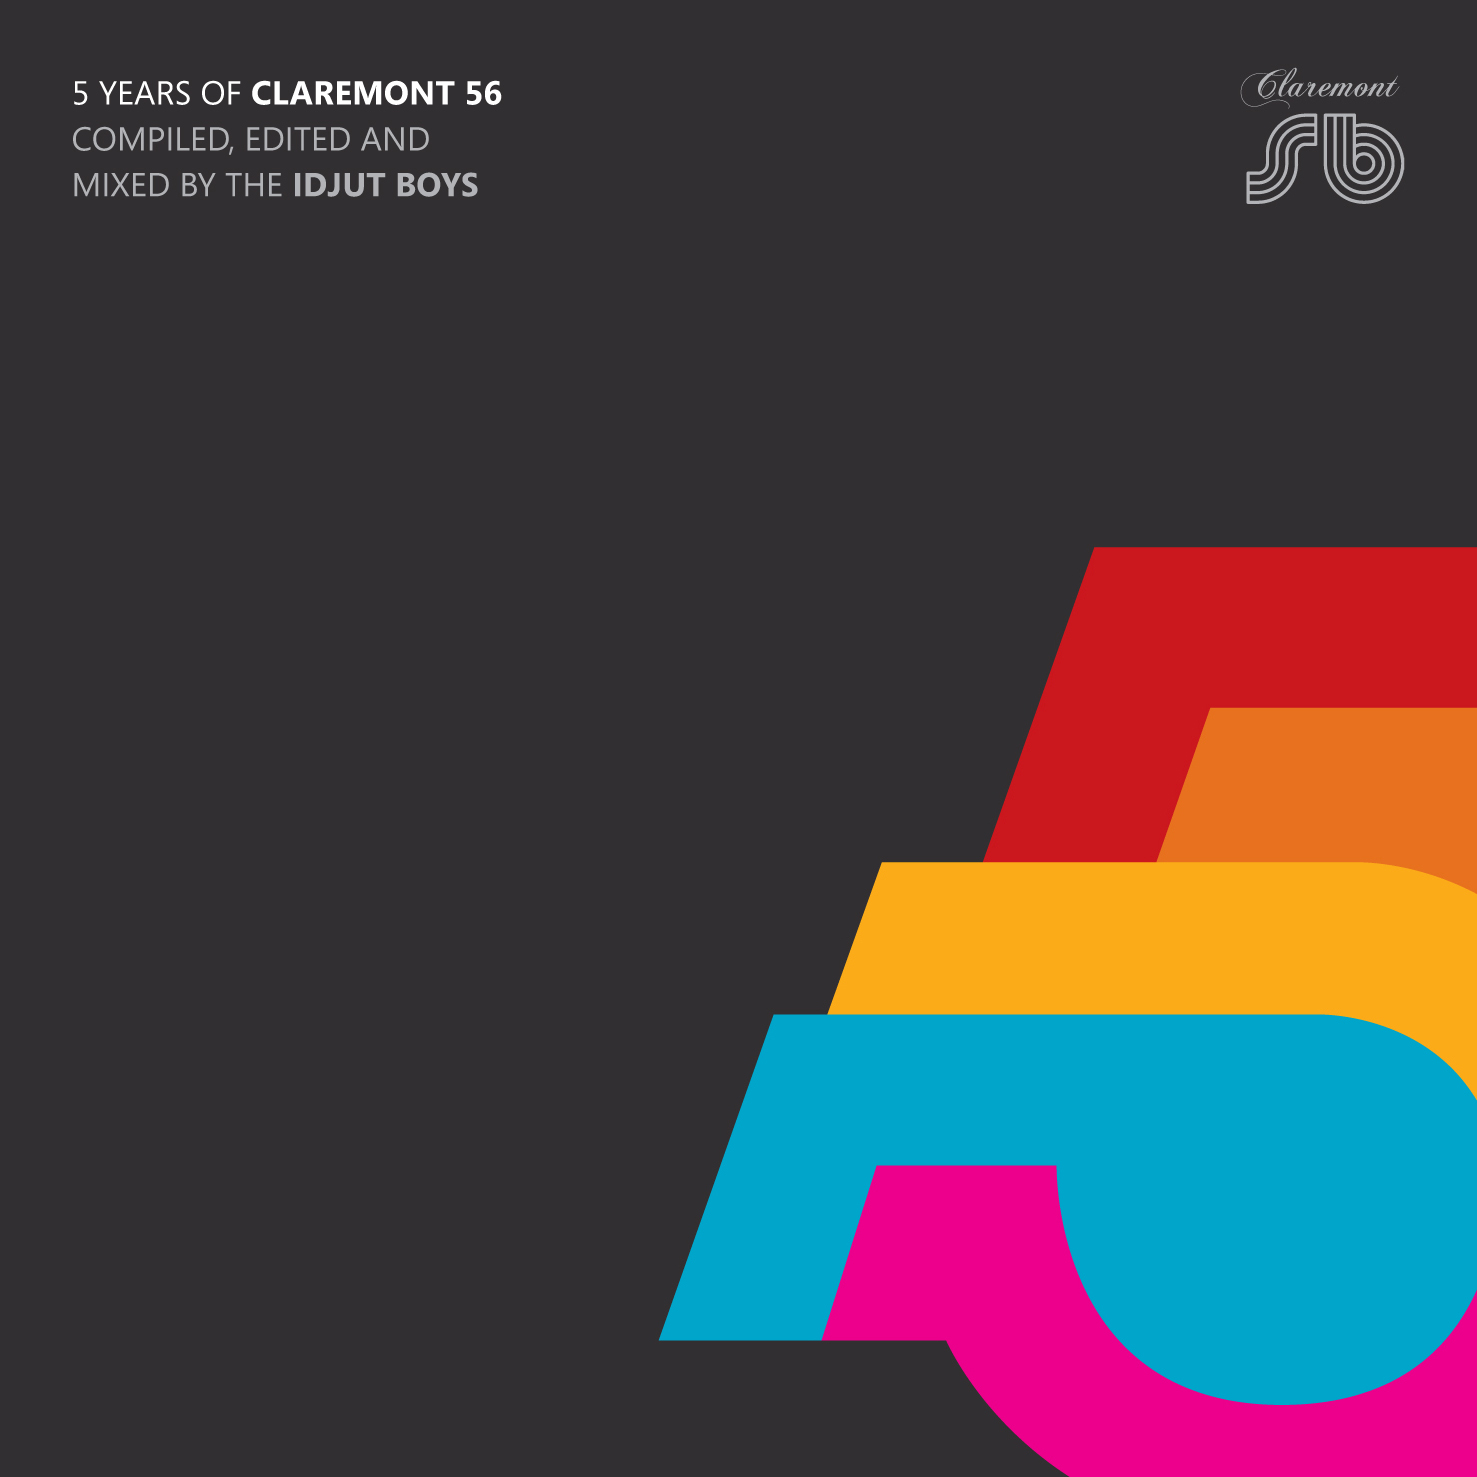 5 years of Claremont 56, compilation, review, Test Pressing, Dr Rob, Paul Murphy, Mudd, Idjut Boys